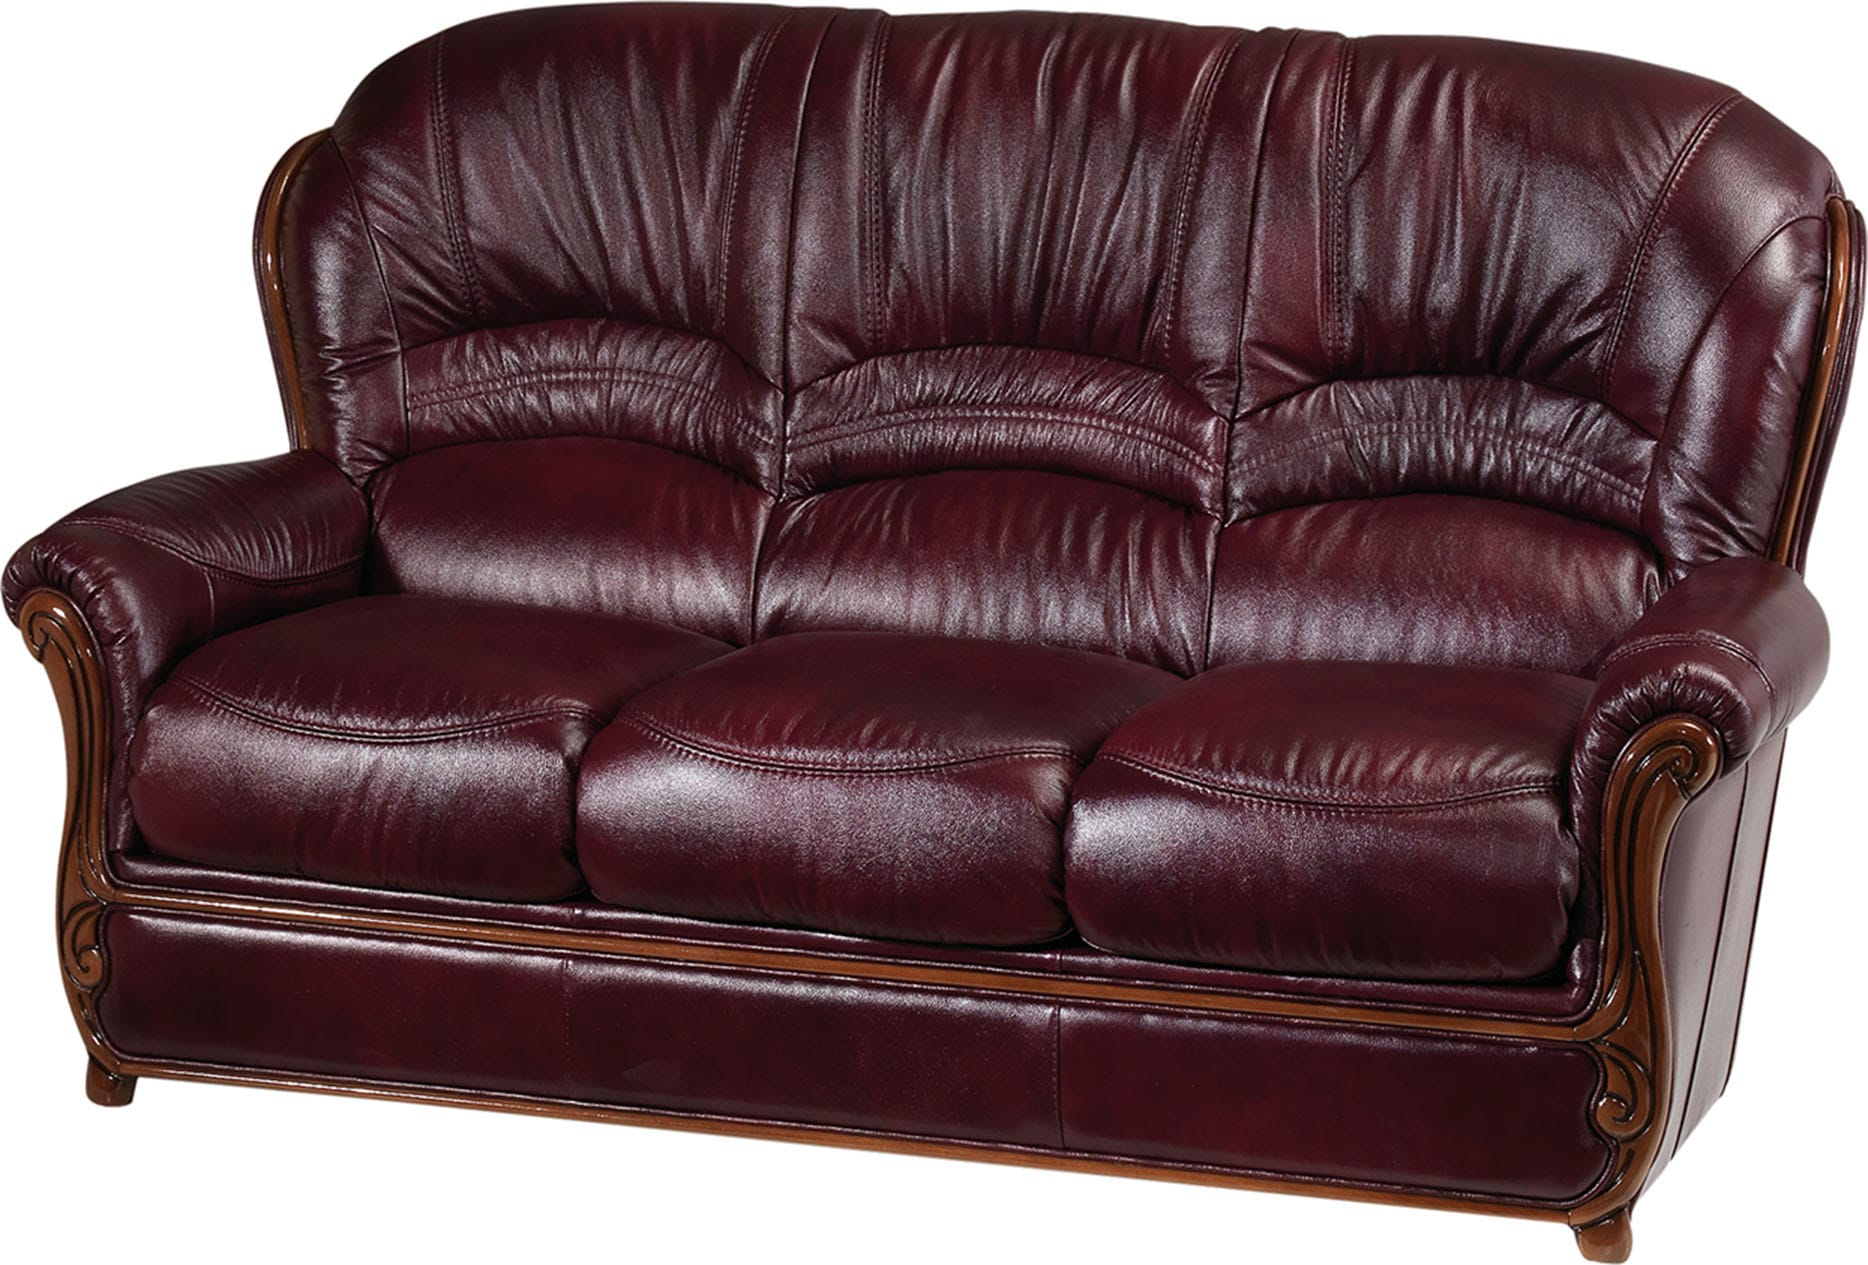 Sara Antic Red Leather Sofa by ESF